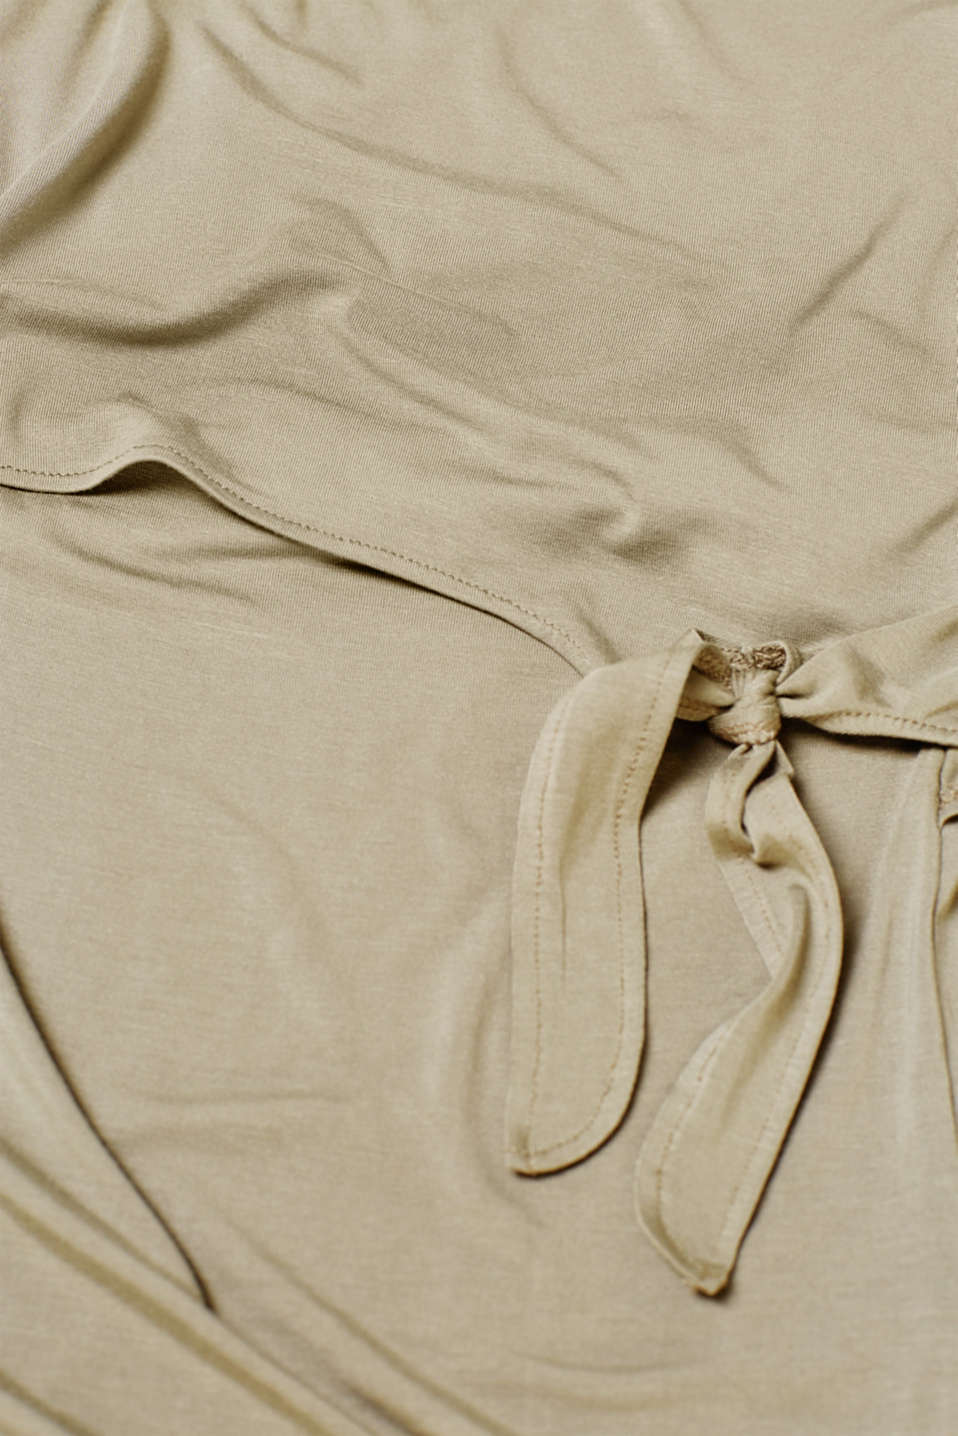 Nursing top with bow details, LCREAL OLIVE, detail image number 4